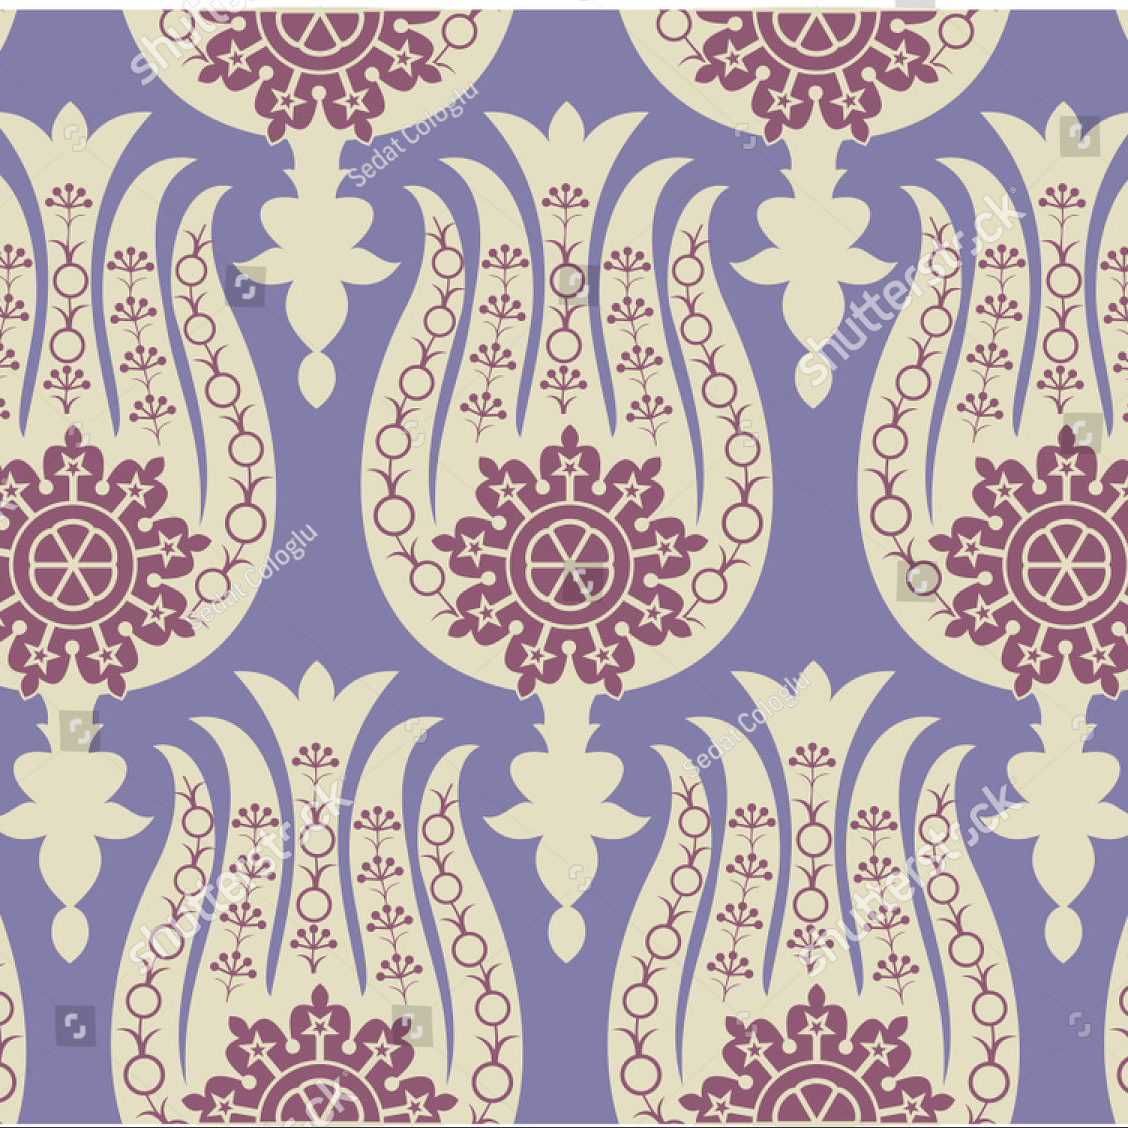 stock-vector-ottoman-carnation-and-tulip-figure-textile-design-it-can-be-used-as-wallpaper-gift-or-wrapping-1358404940